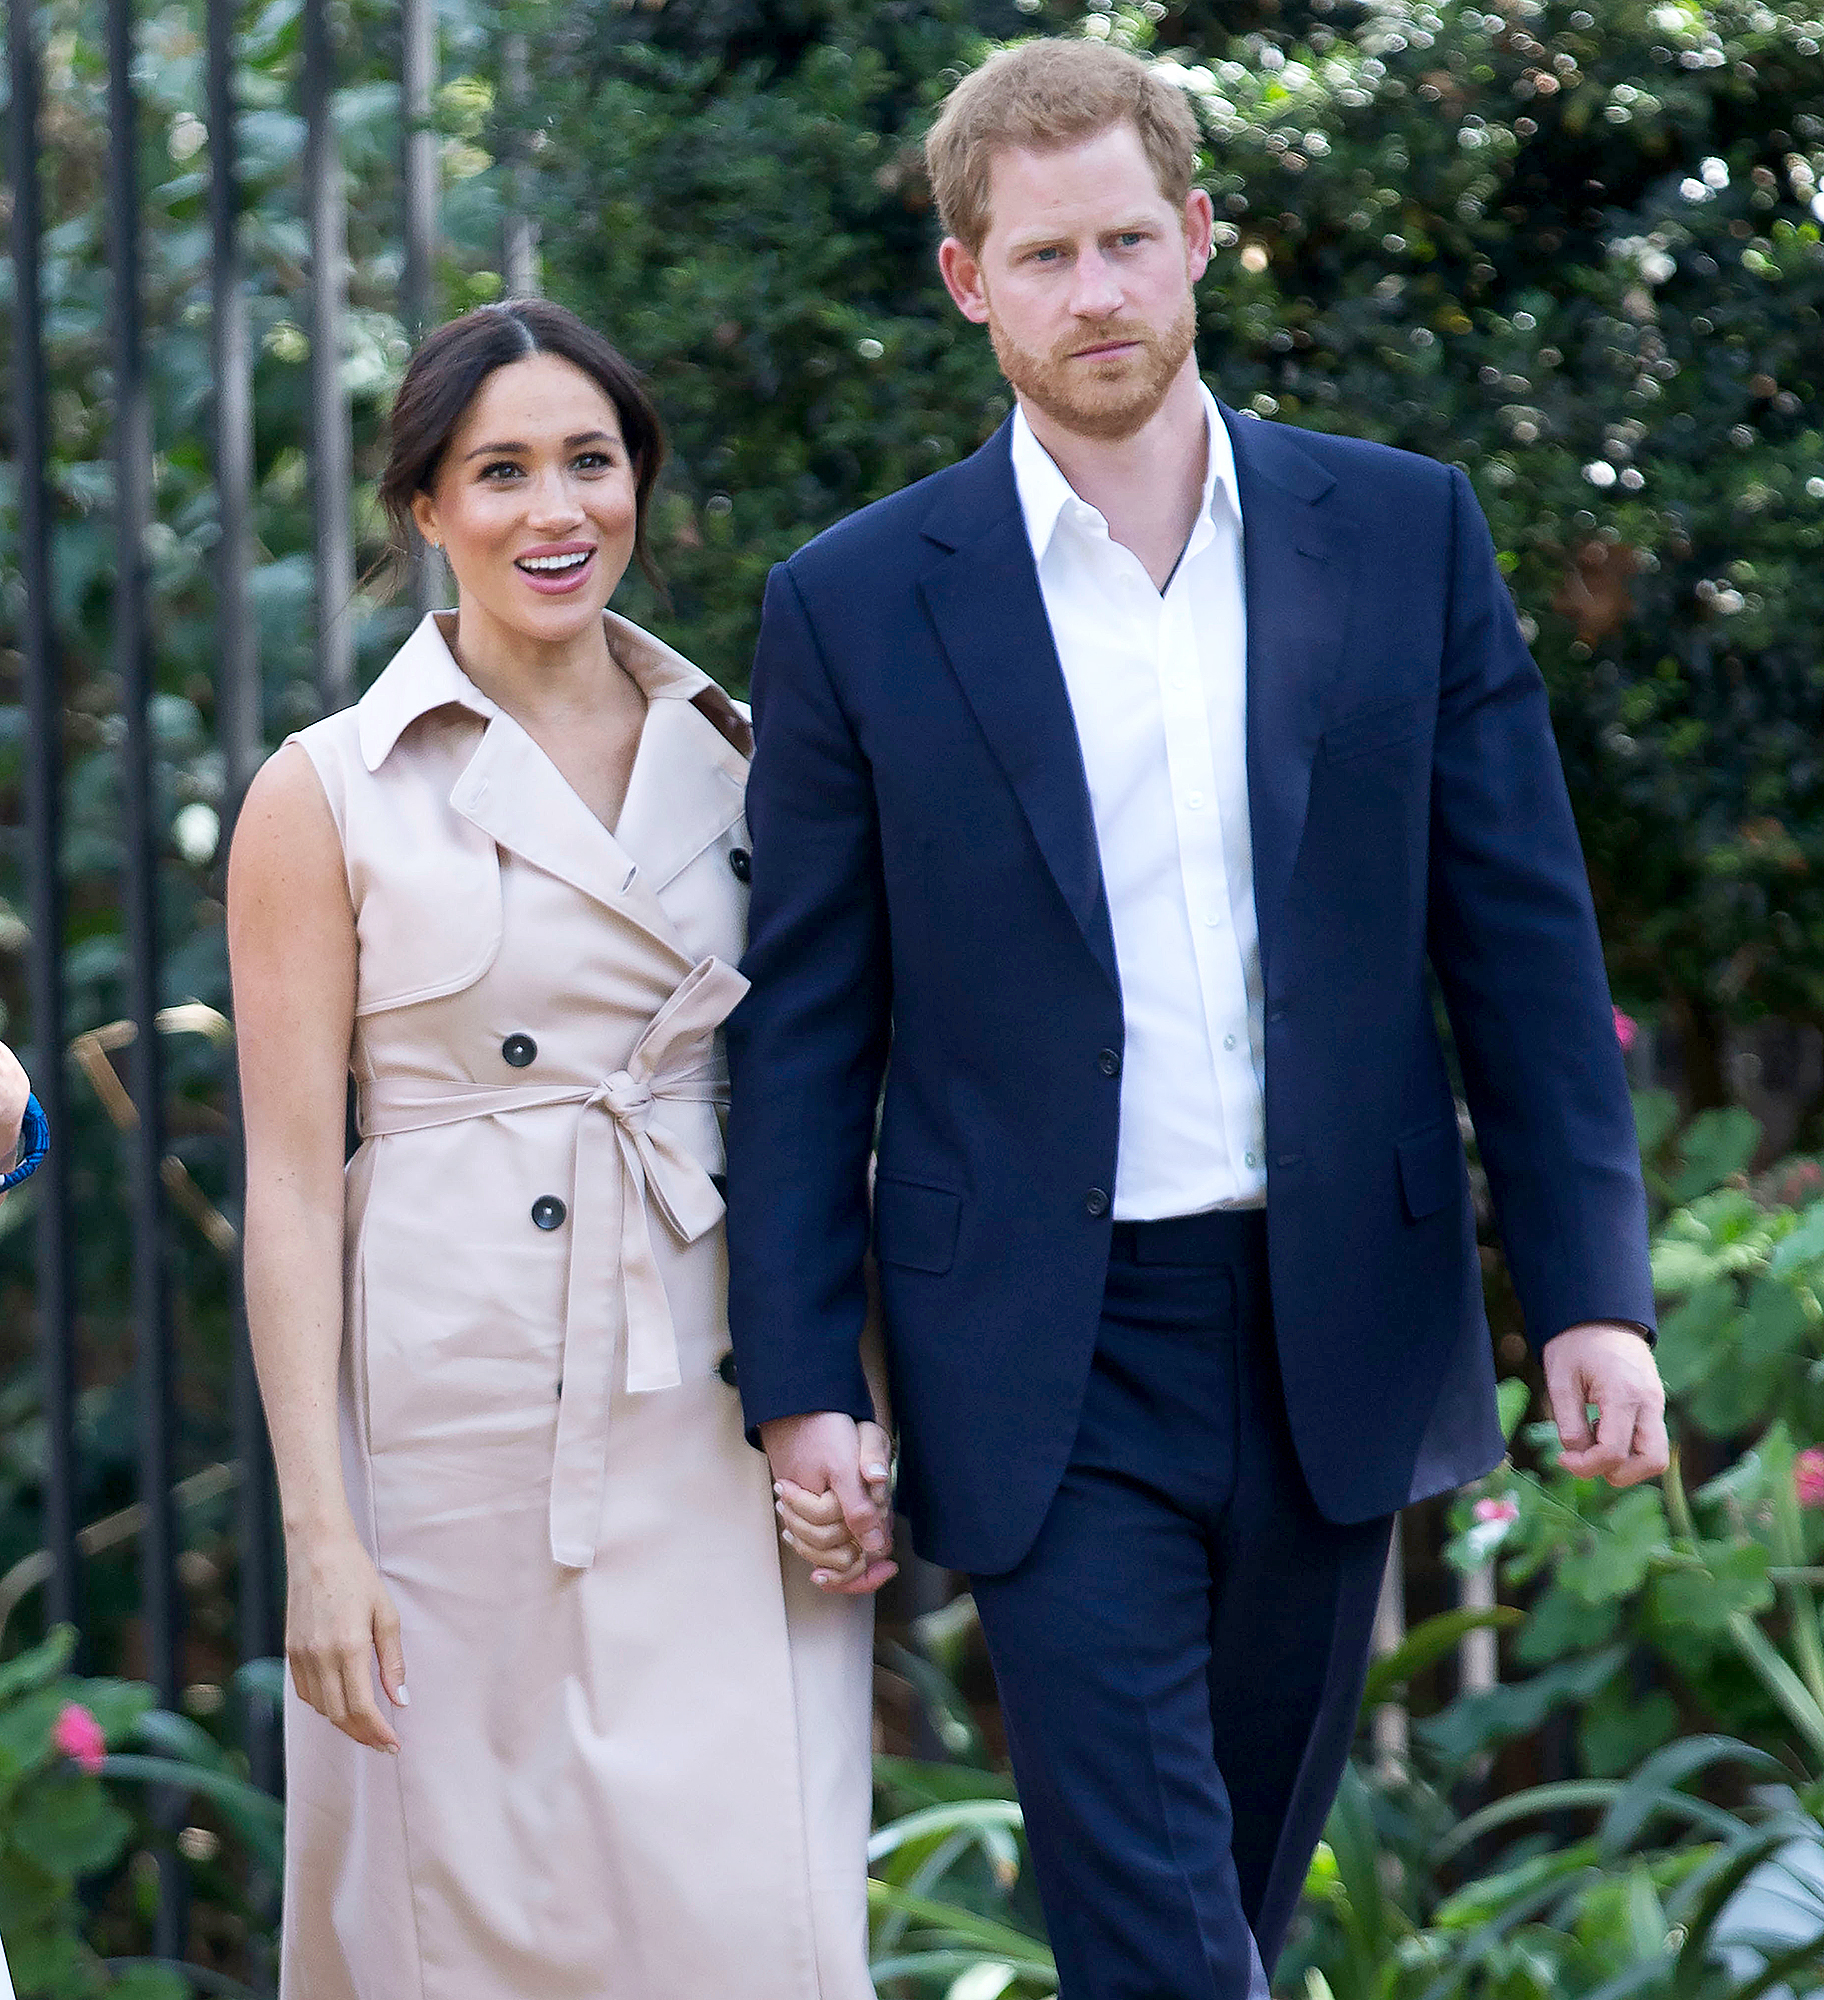 Hugh-Grant-Reacts-to-Prince-Harry-and-Duchess-Meghan's-Royal-Step-Back